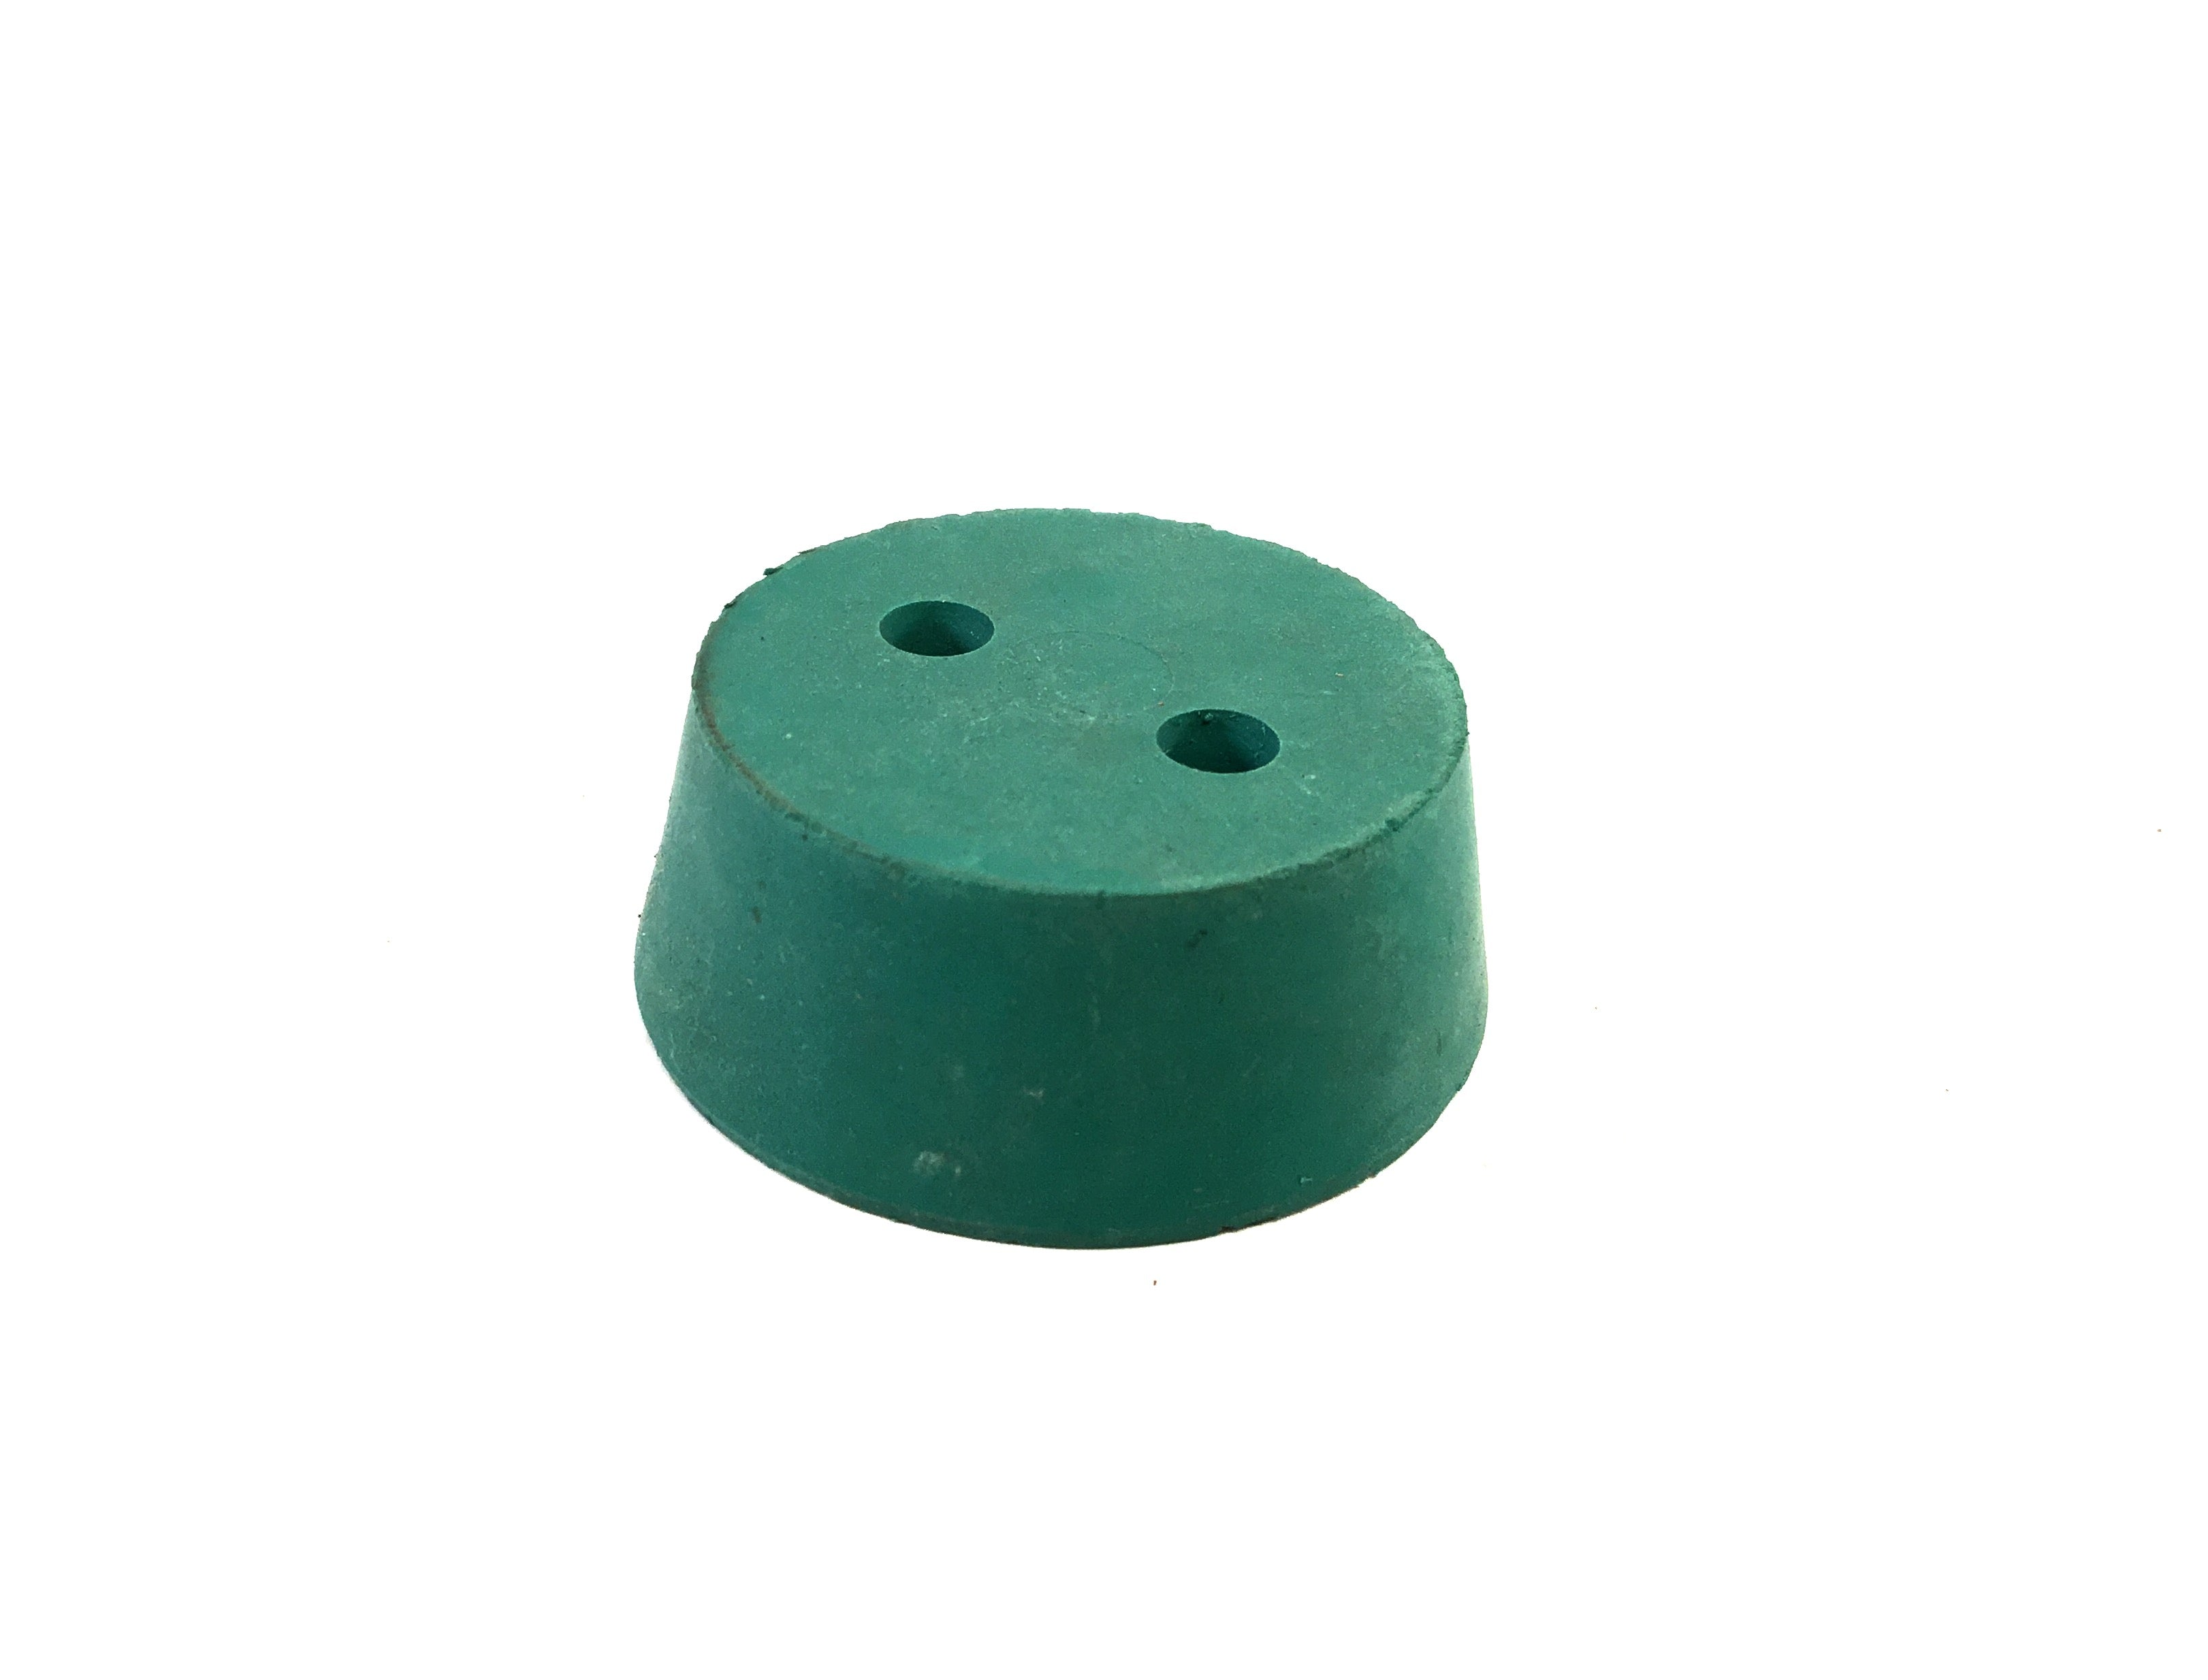 Neoprene #12 Stopper - w/ 2, 8mm holes